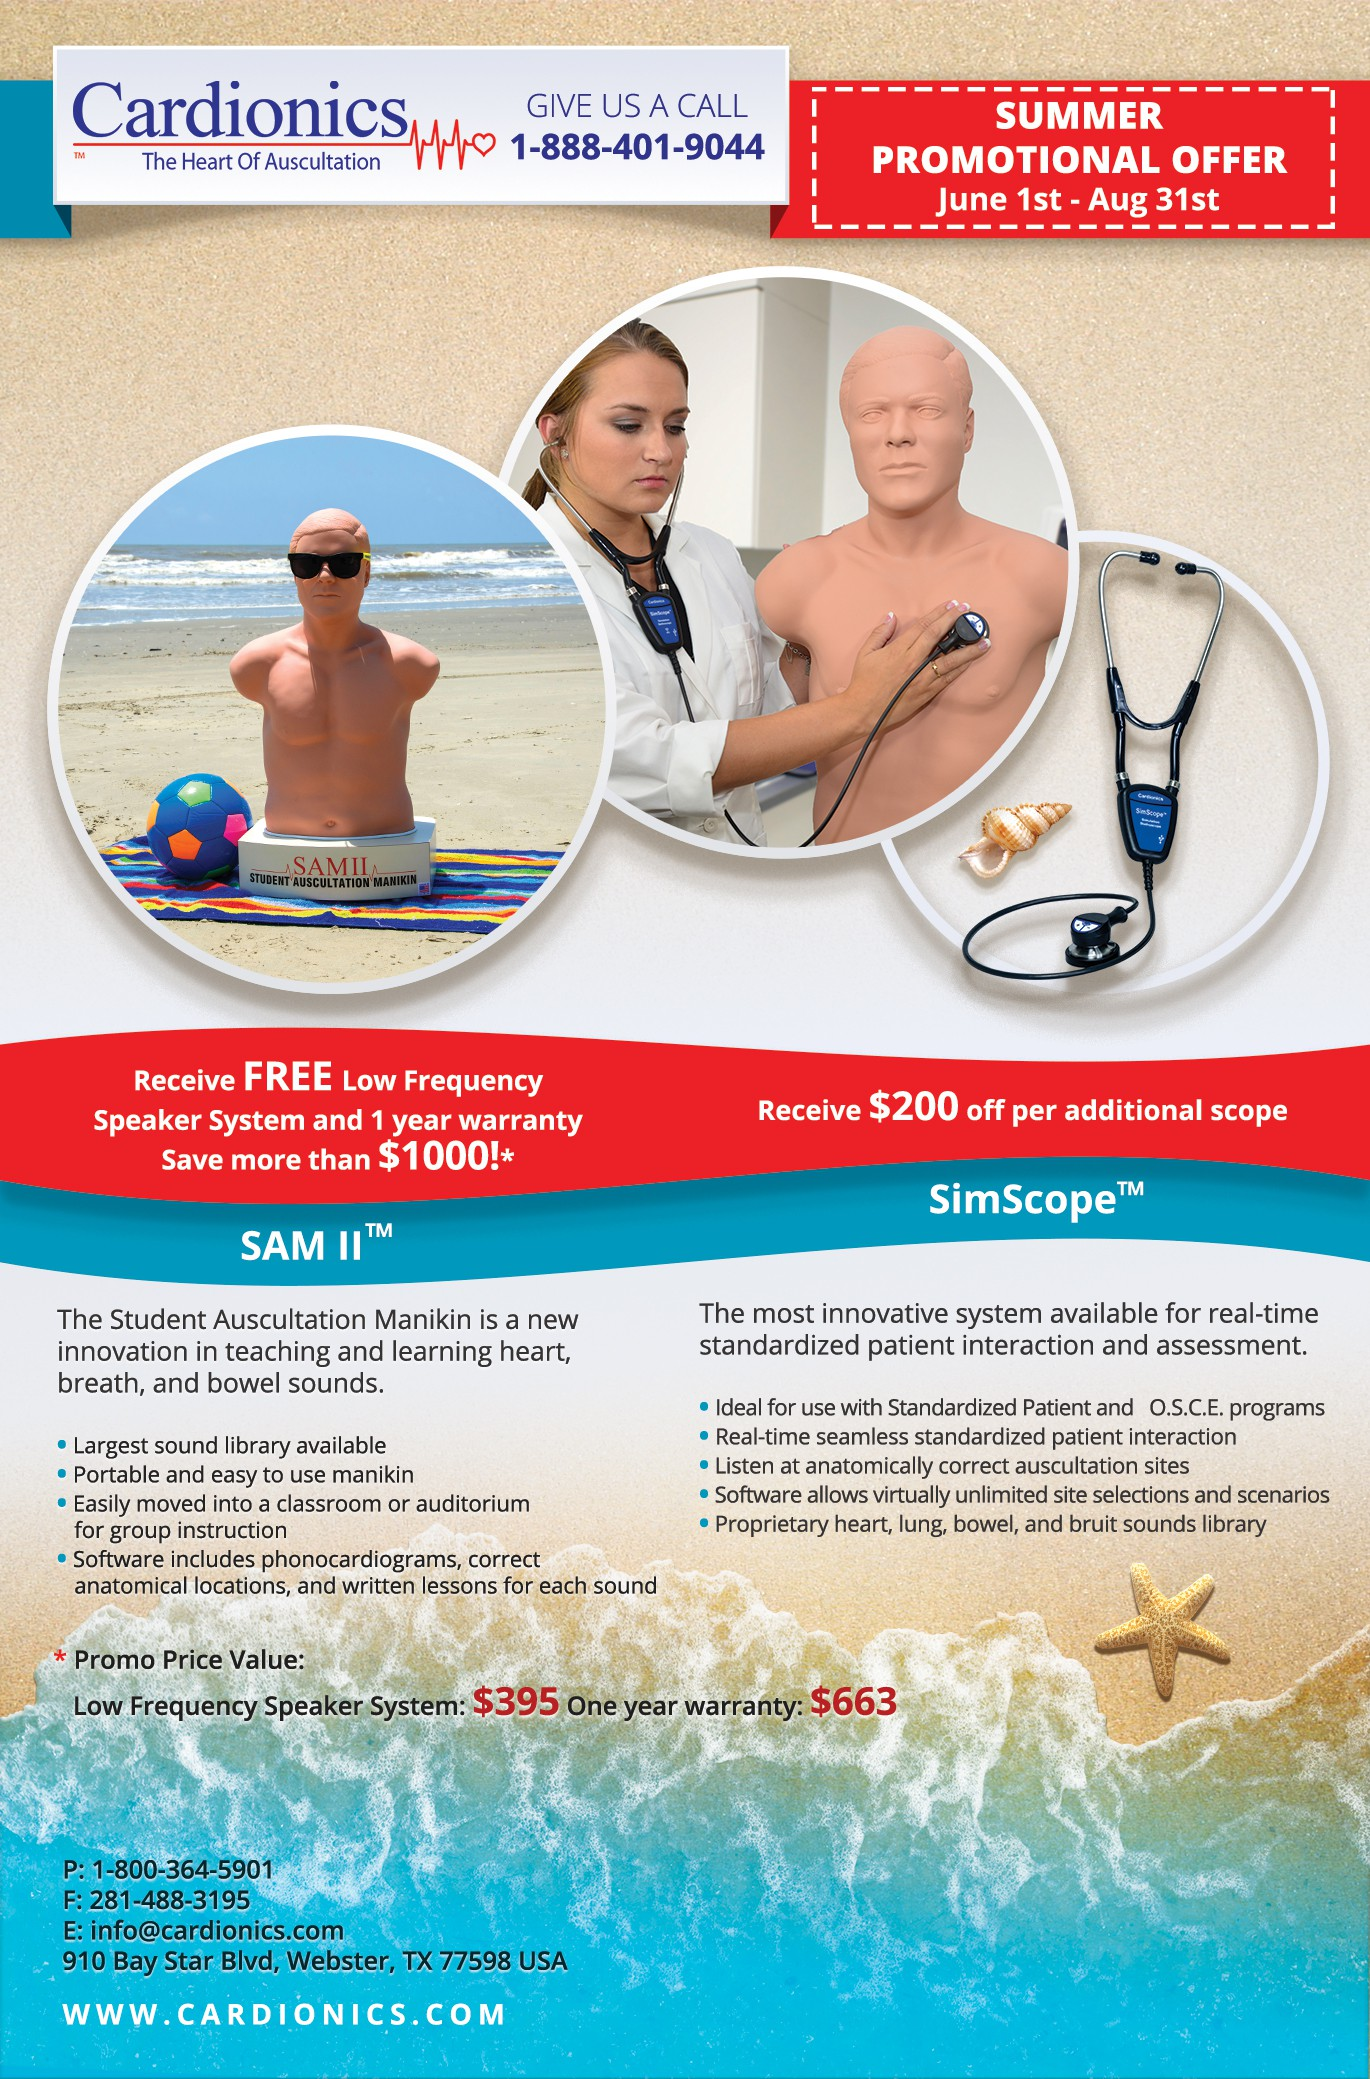 Create a Summer Promo Flyer for Cardionics